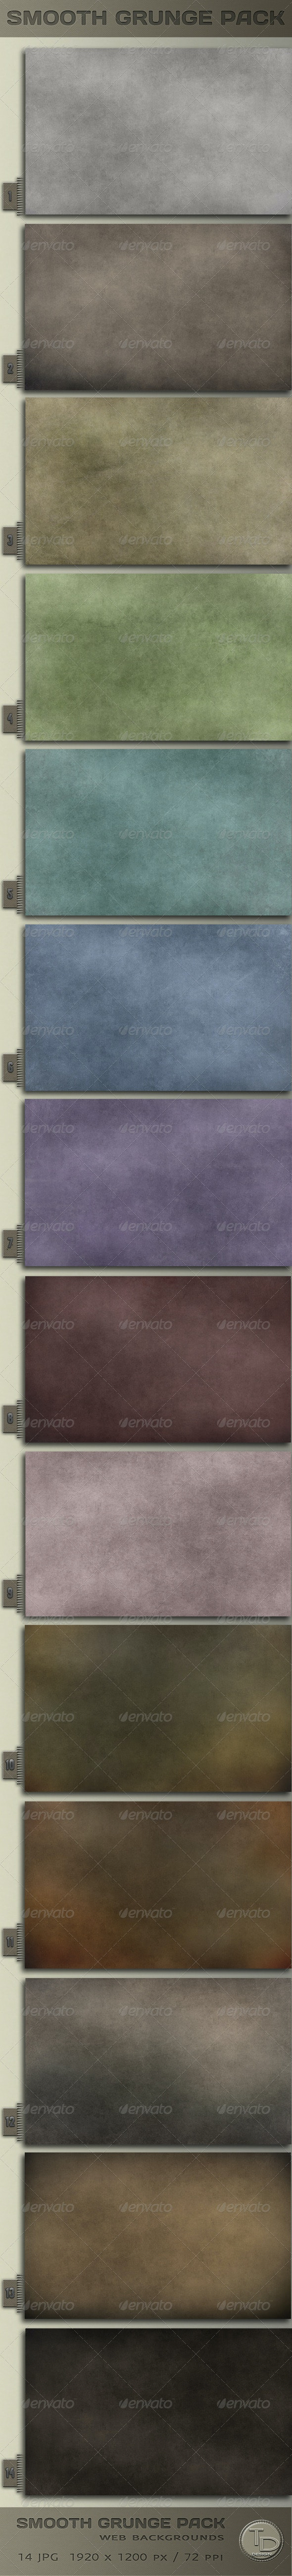 Smooth Grunge Pack - Miscellaneous Backgrounds